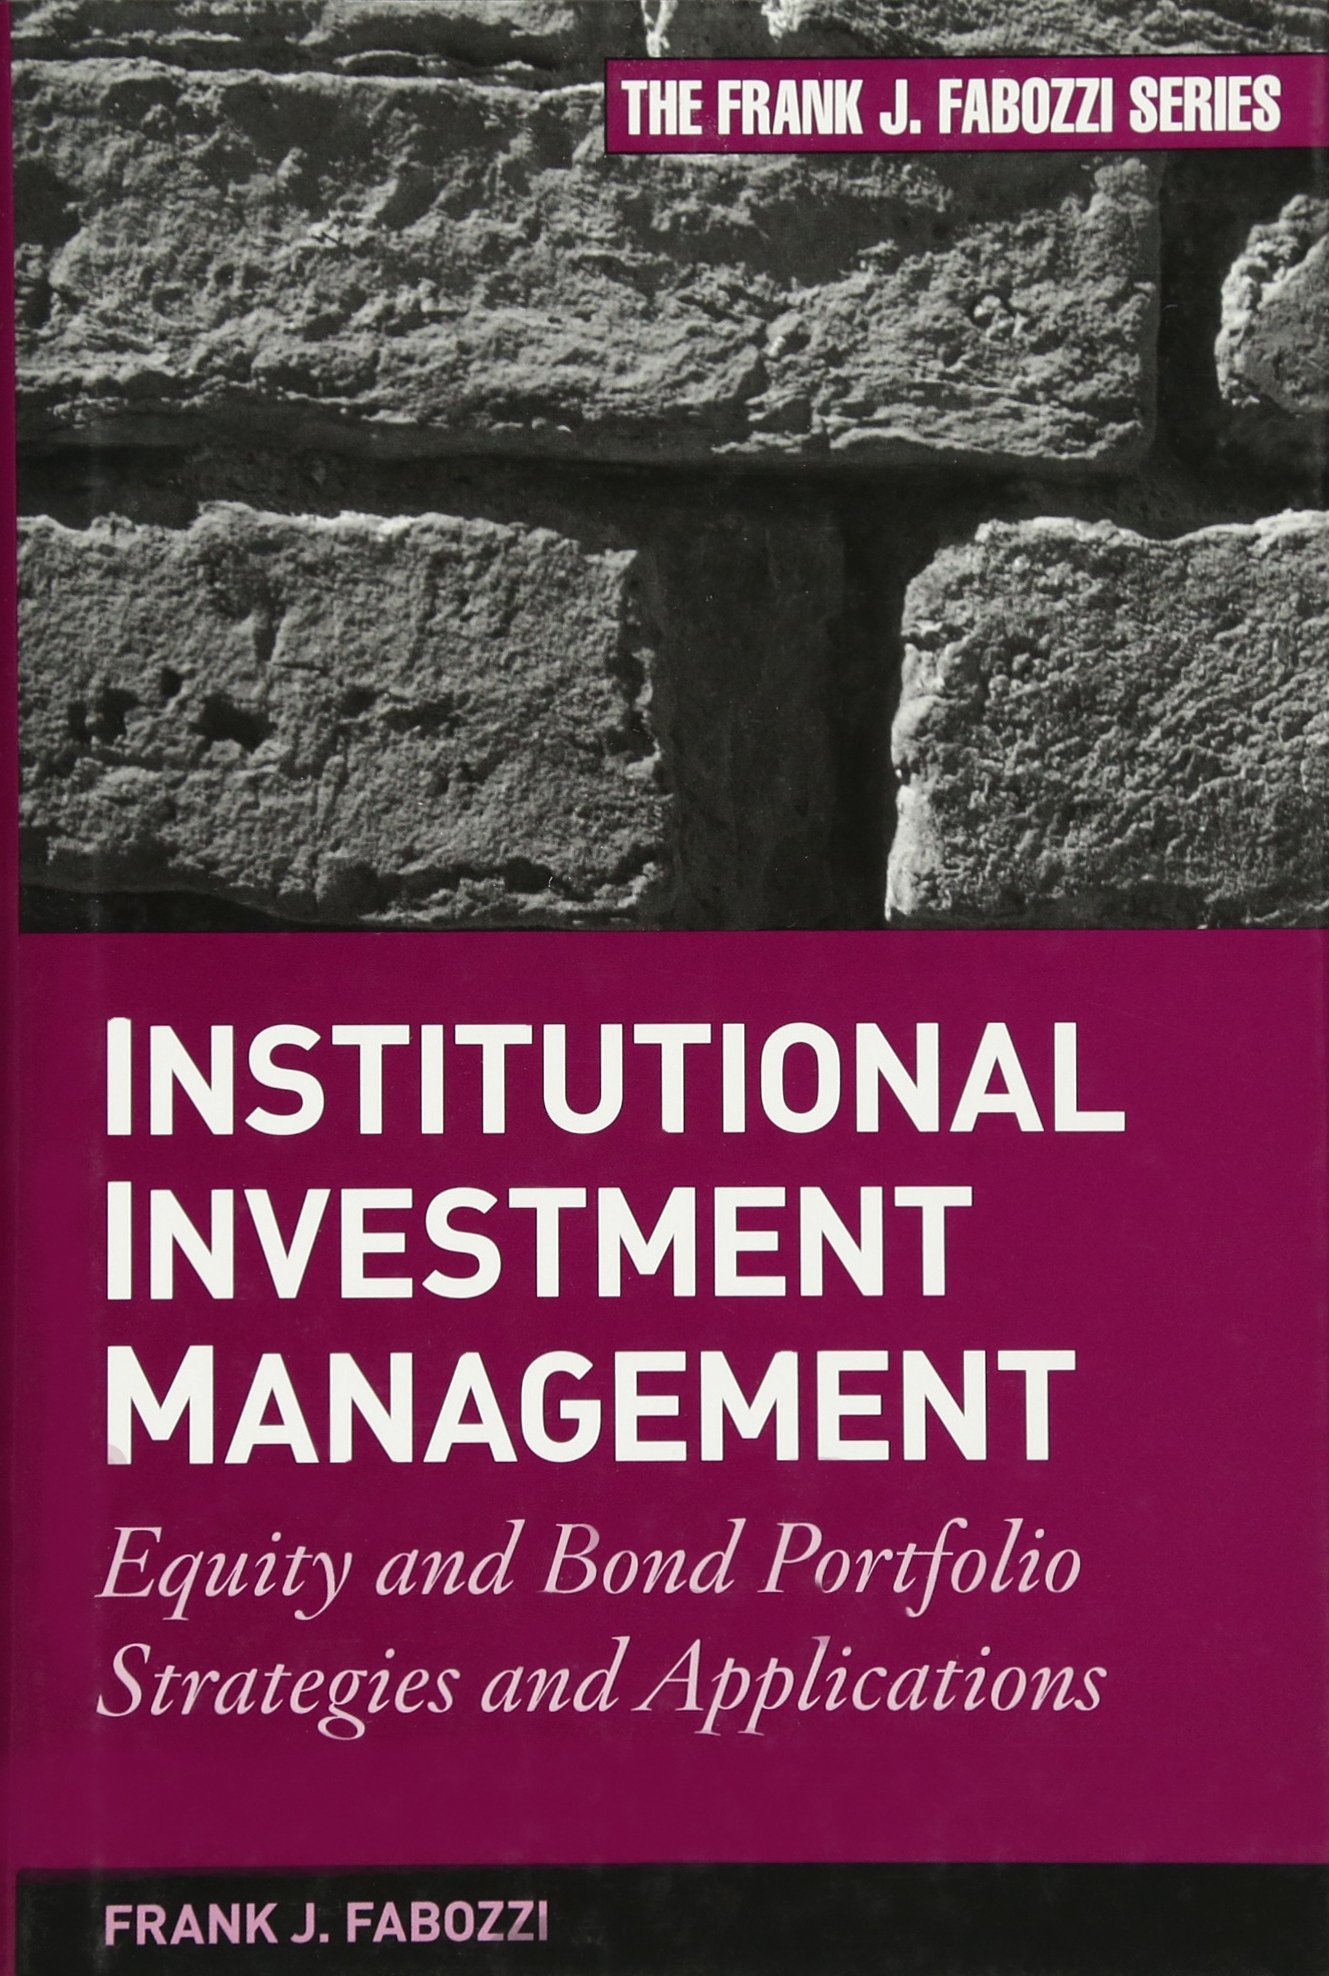 Investment and portfolio management books human capital investment group james caan wikipedia